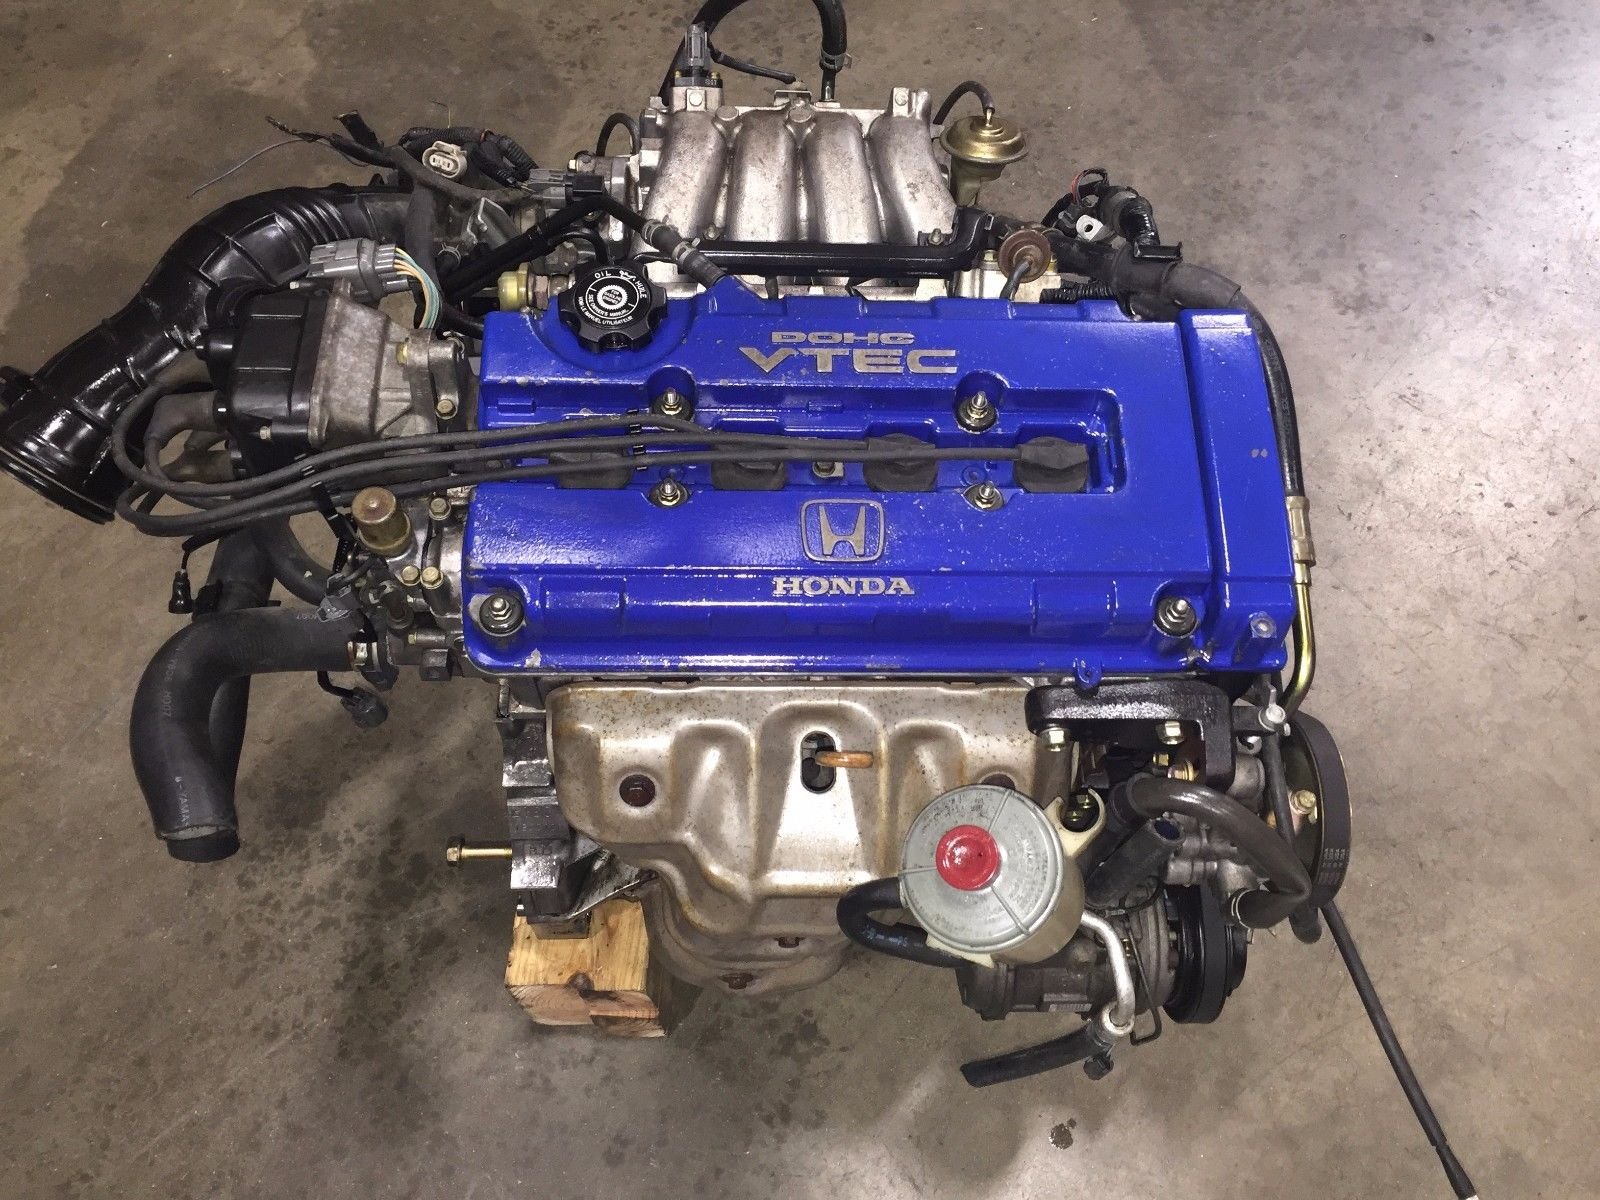 Low mileage Acura Integra Engines, Used Acura Integra Engines, Used